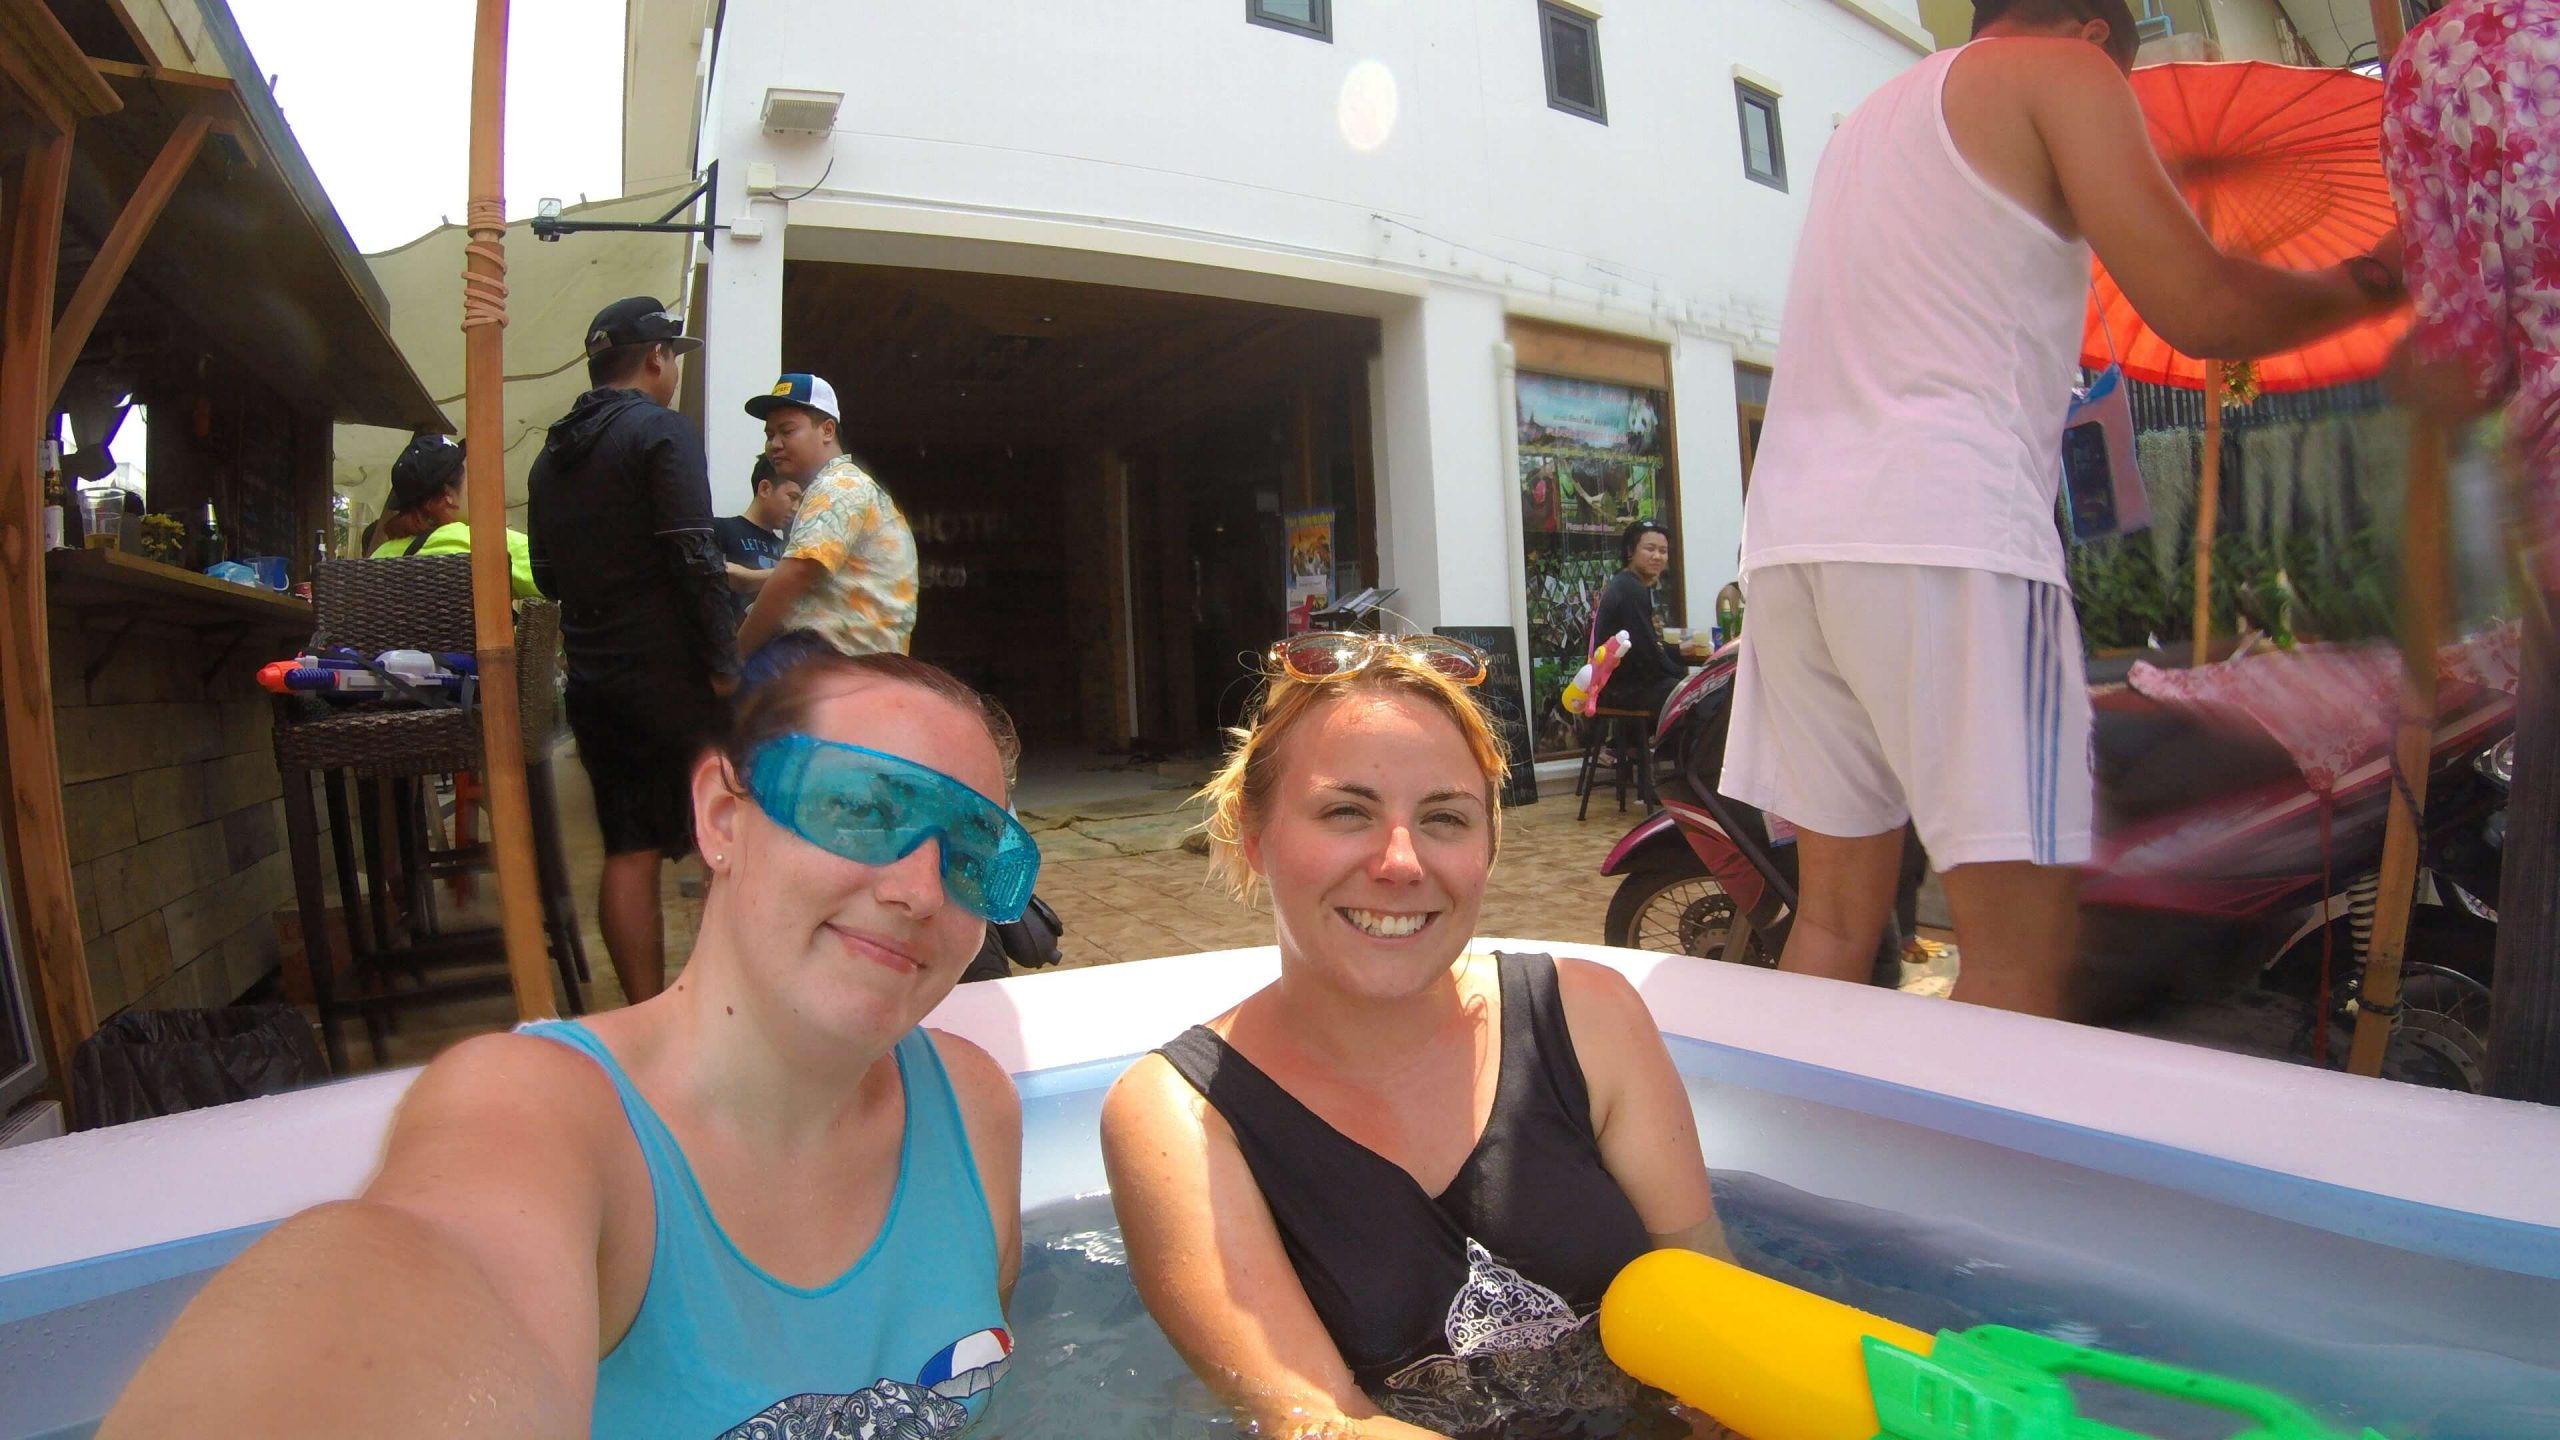 Chilling in the blow up pool outside our hostel for Songkran Festival